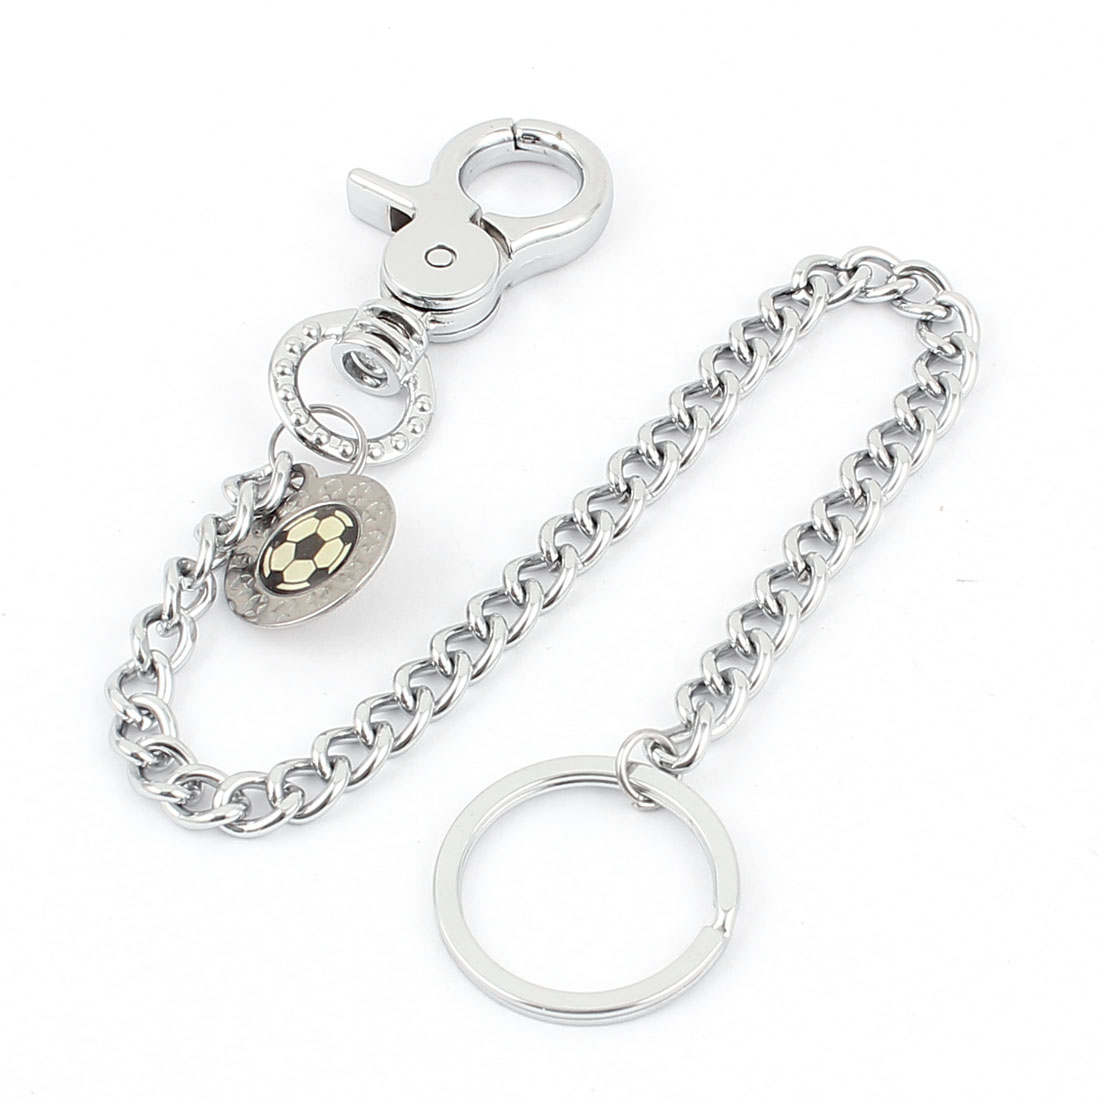 Metal Key Fob Keyring Key Chain Lobster Clasps Closure Silver Tone